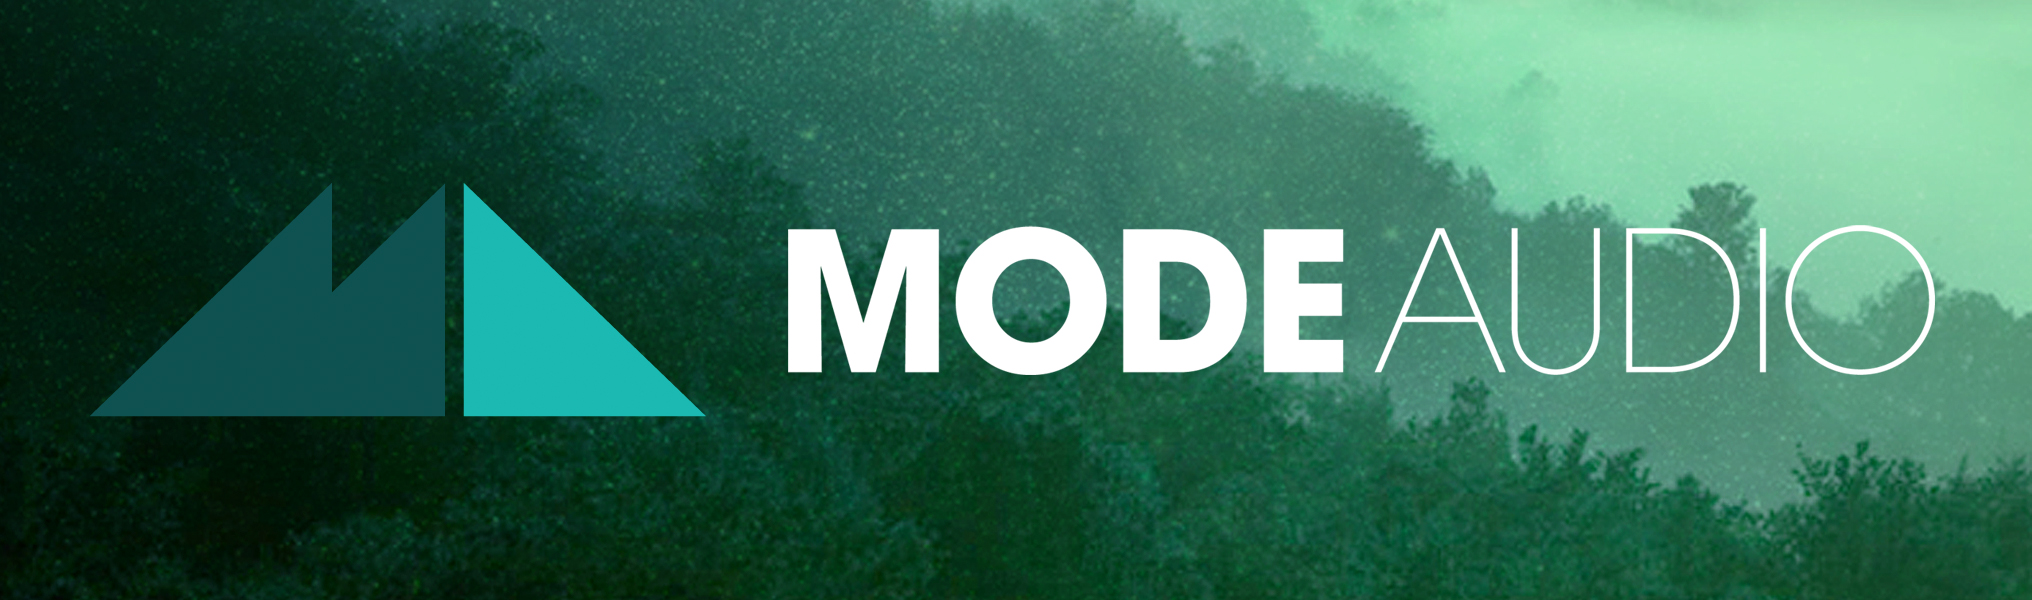 modeaudio_banner